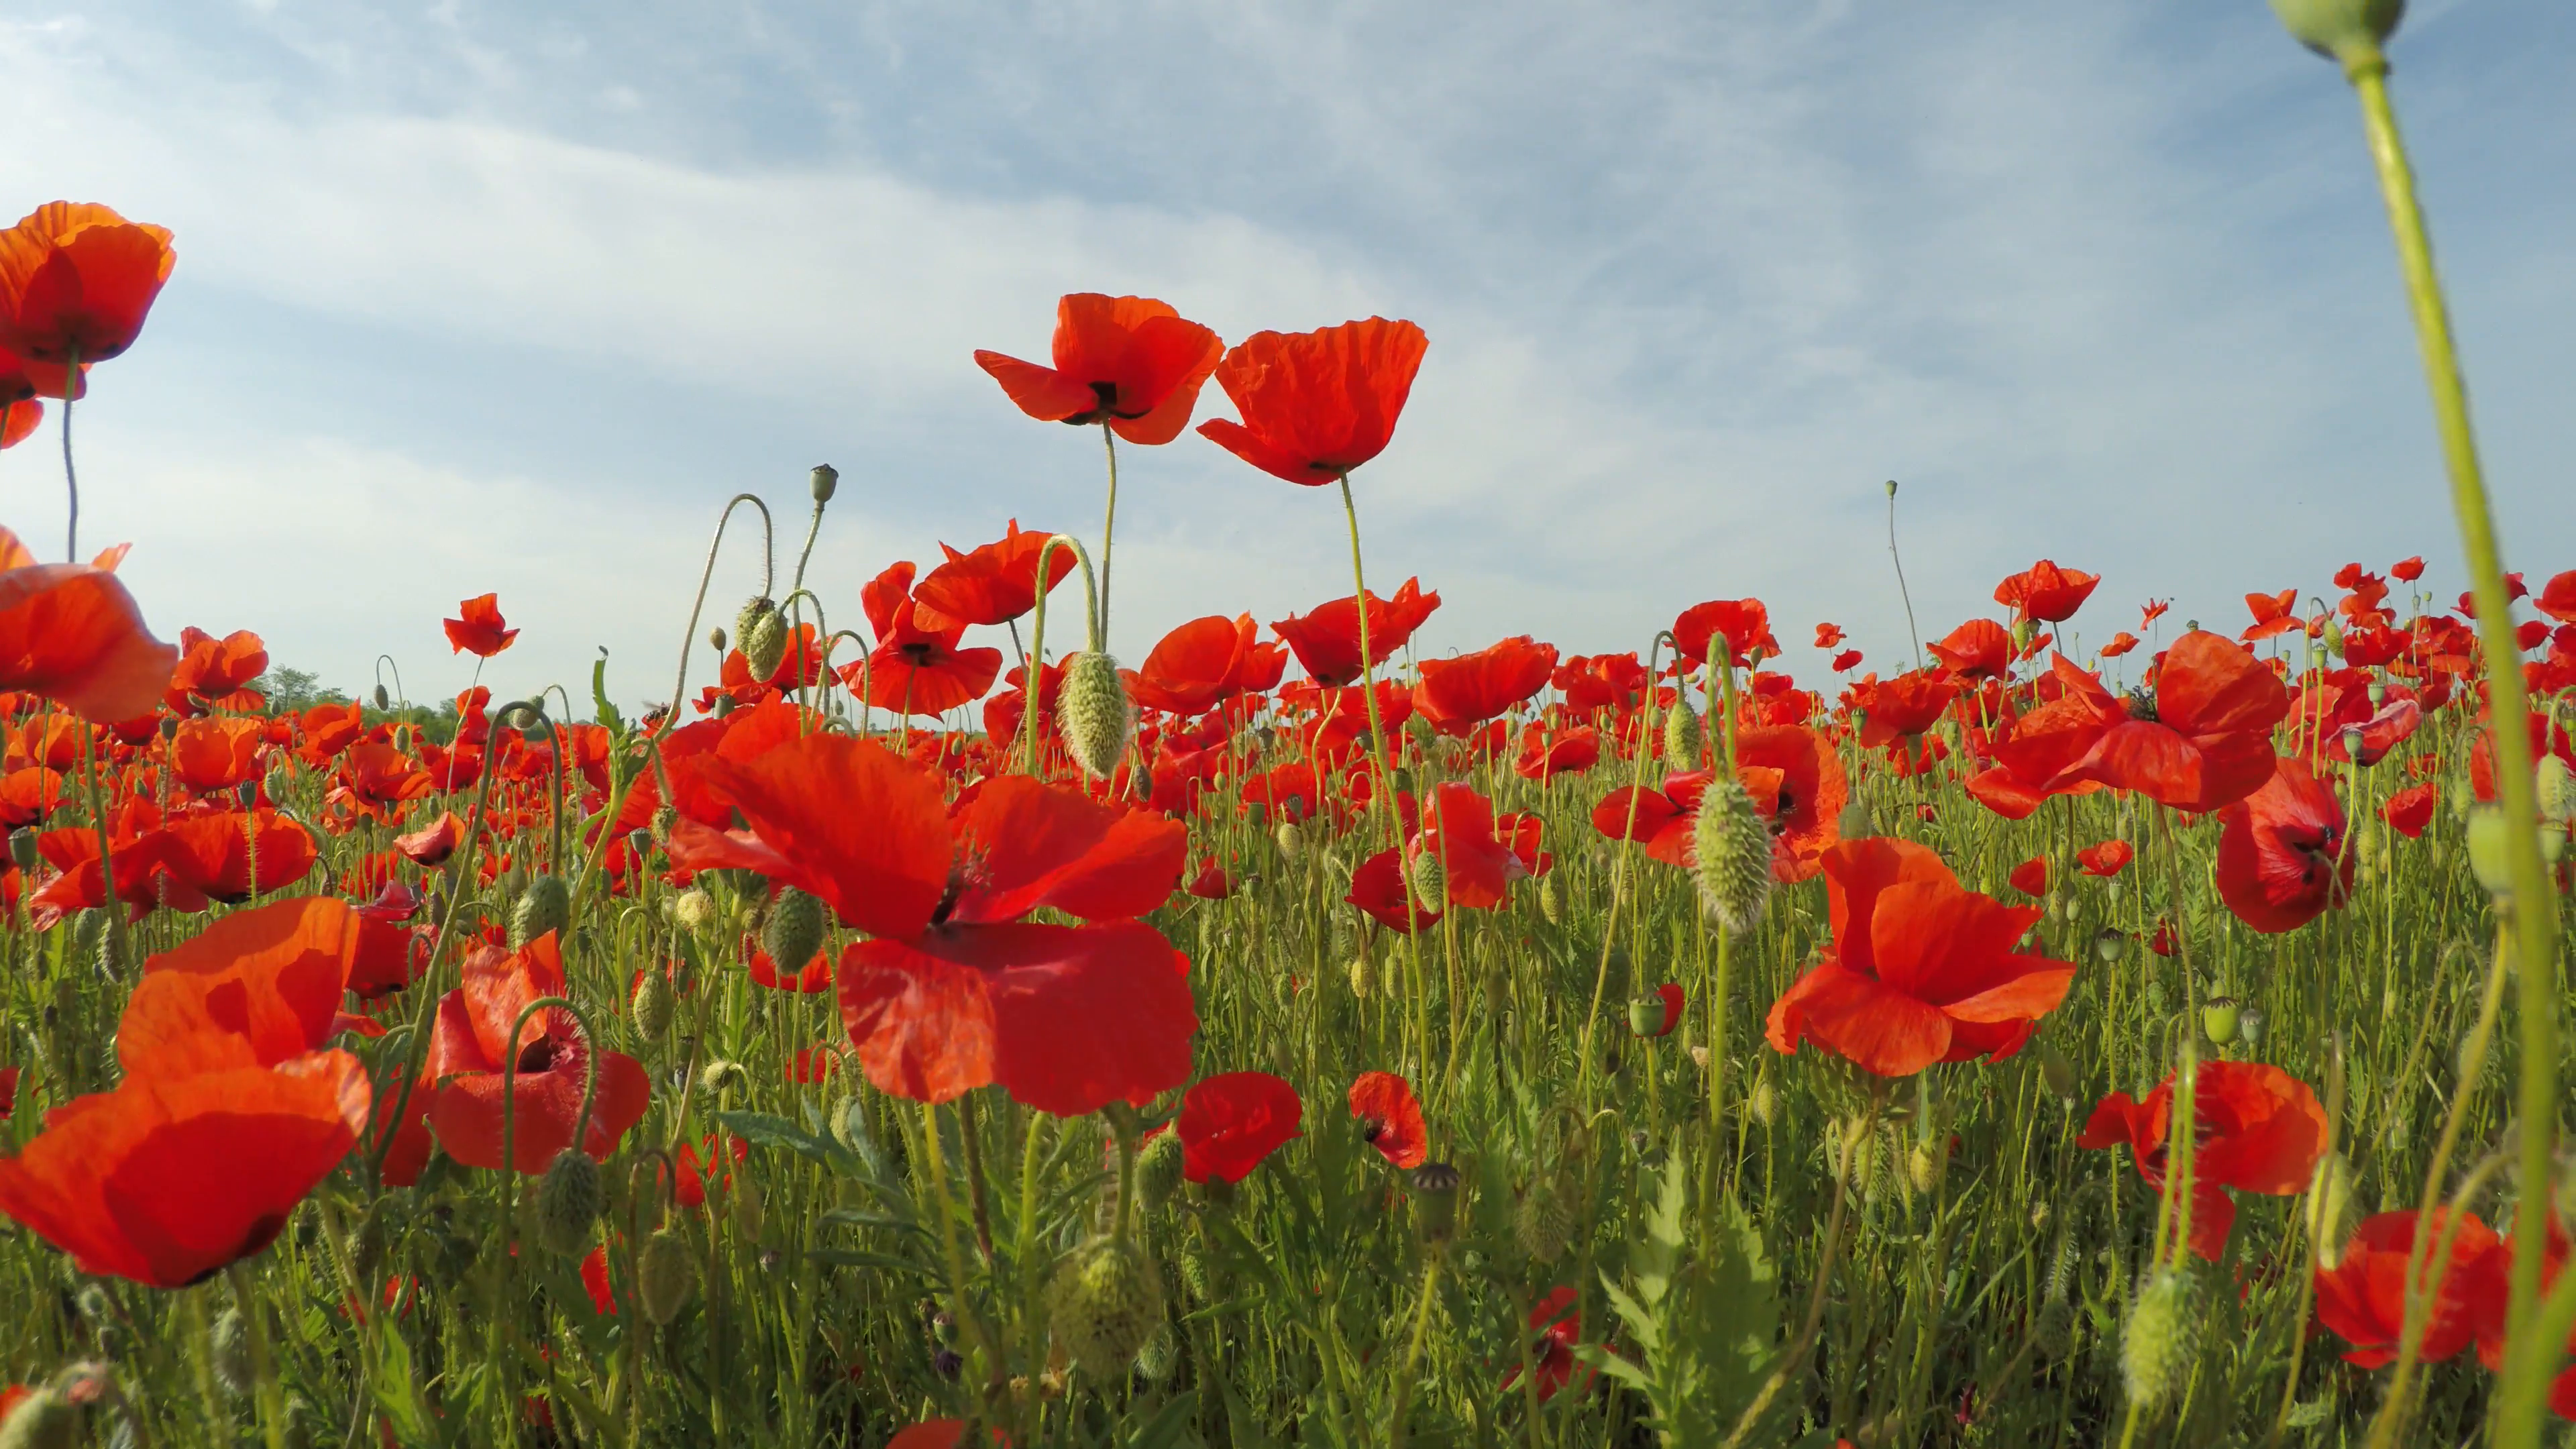 Upward shot from red poppy flowers blooming in green grass over ...